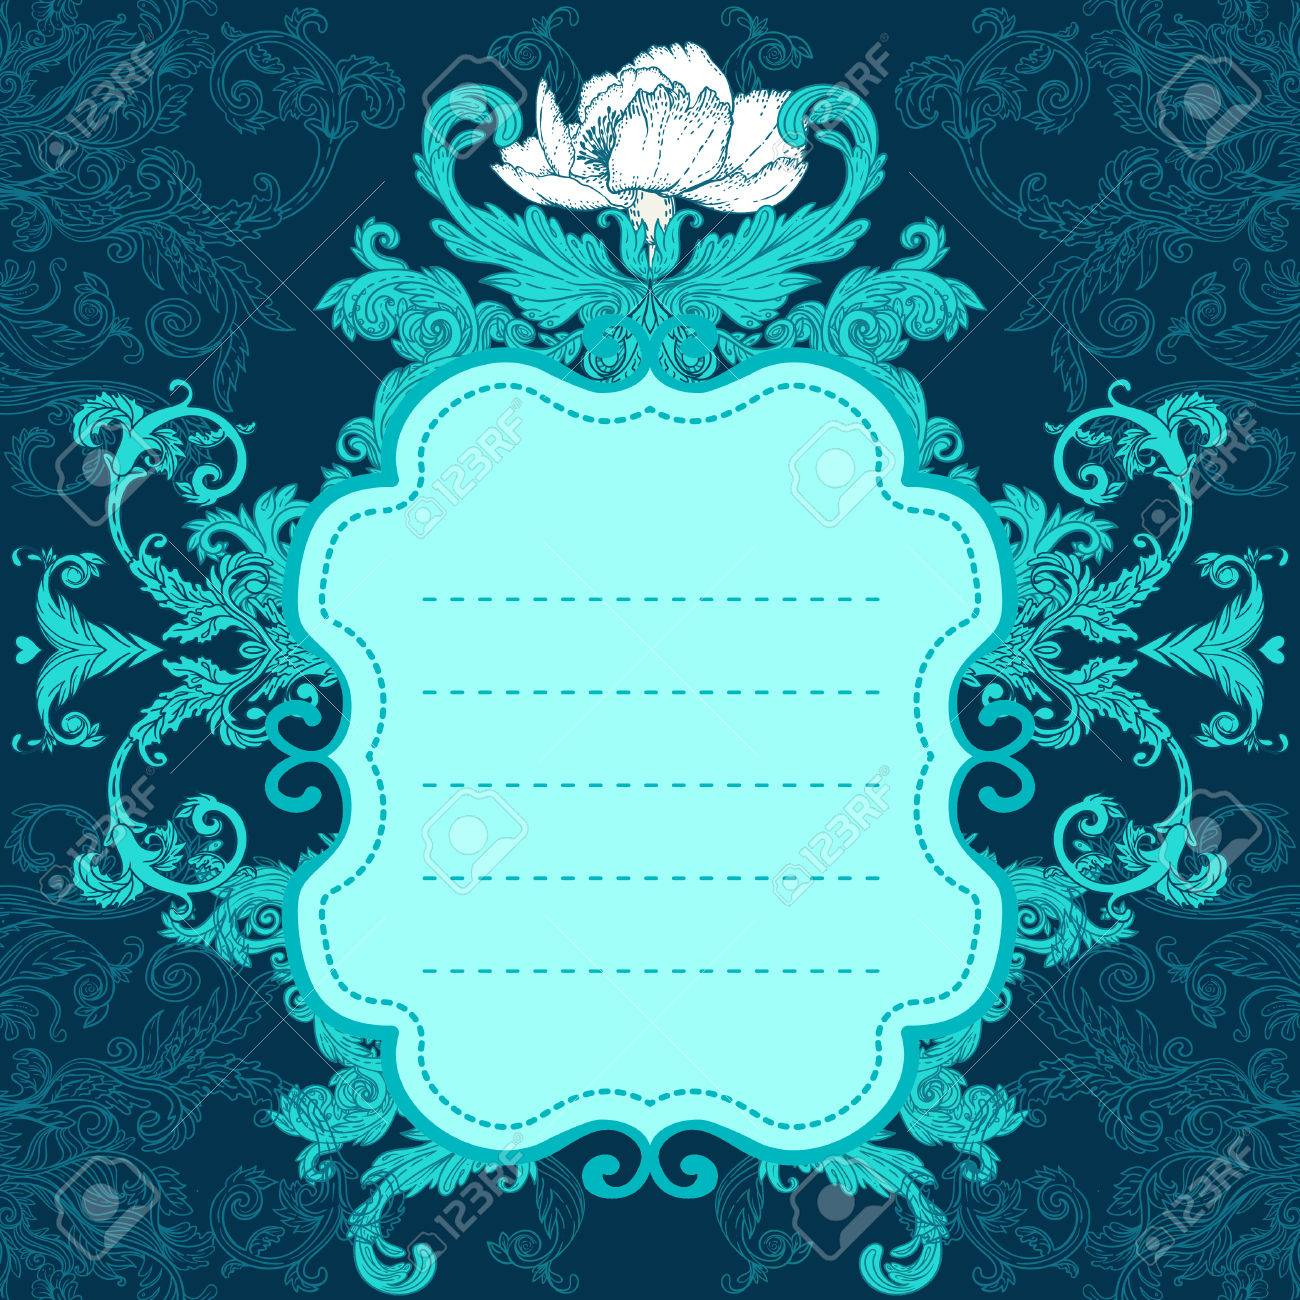 Vintage background ornate baroque pattern vector illustration stock - Vintage Background Ornate Baroque Pattern Vector Illustration Stock Vector 33591870